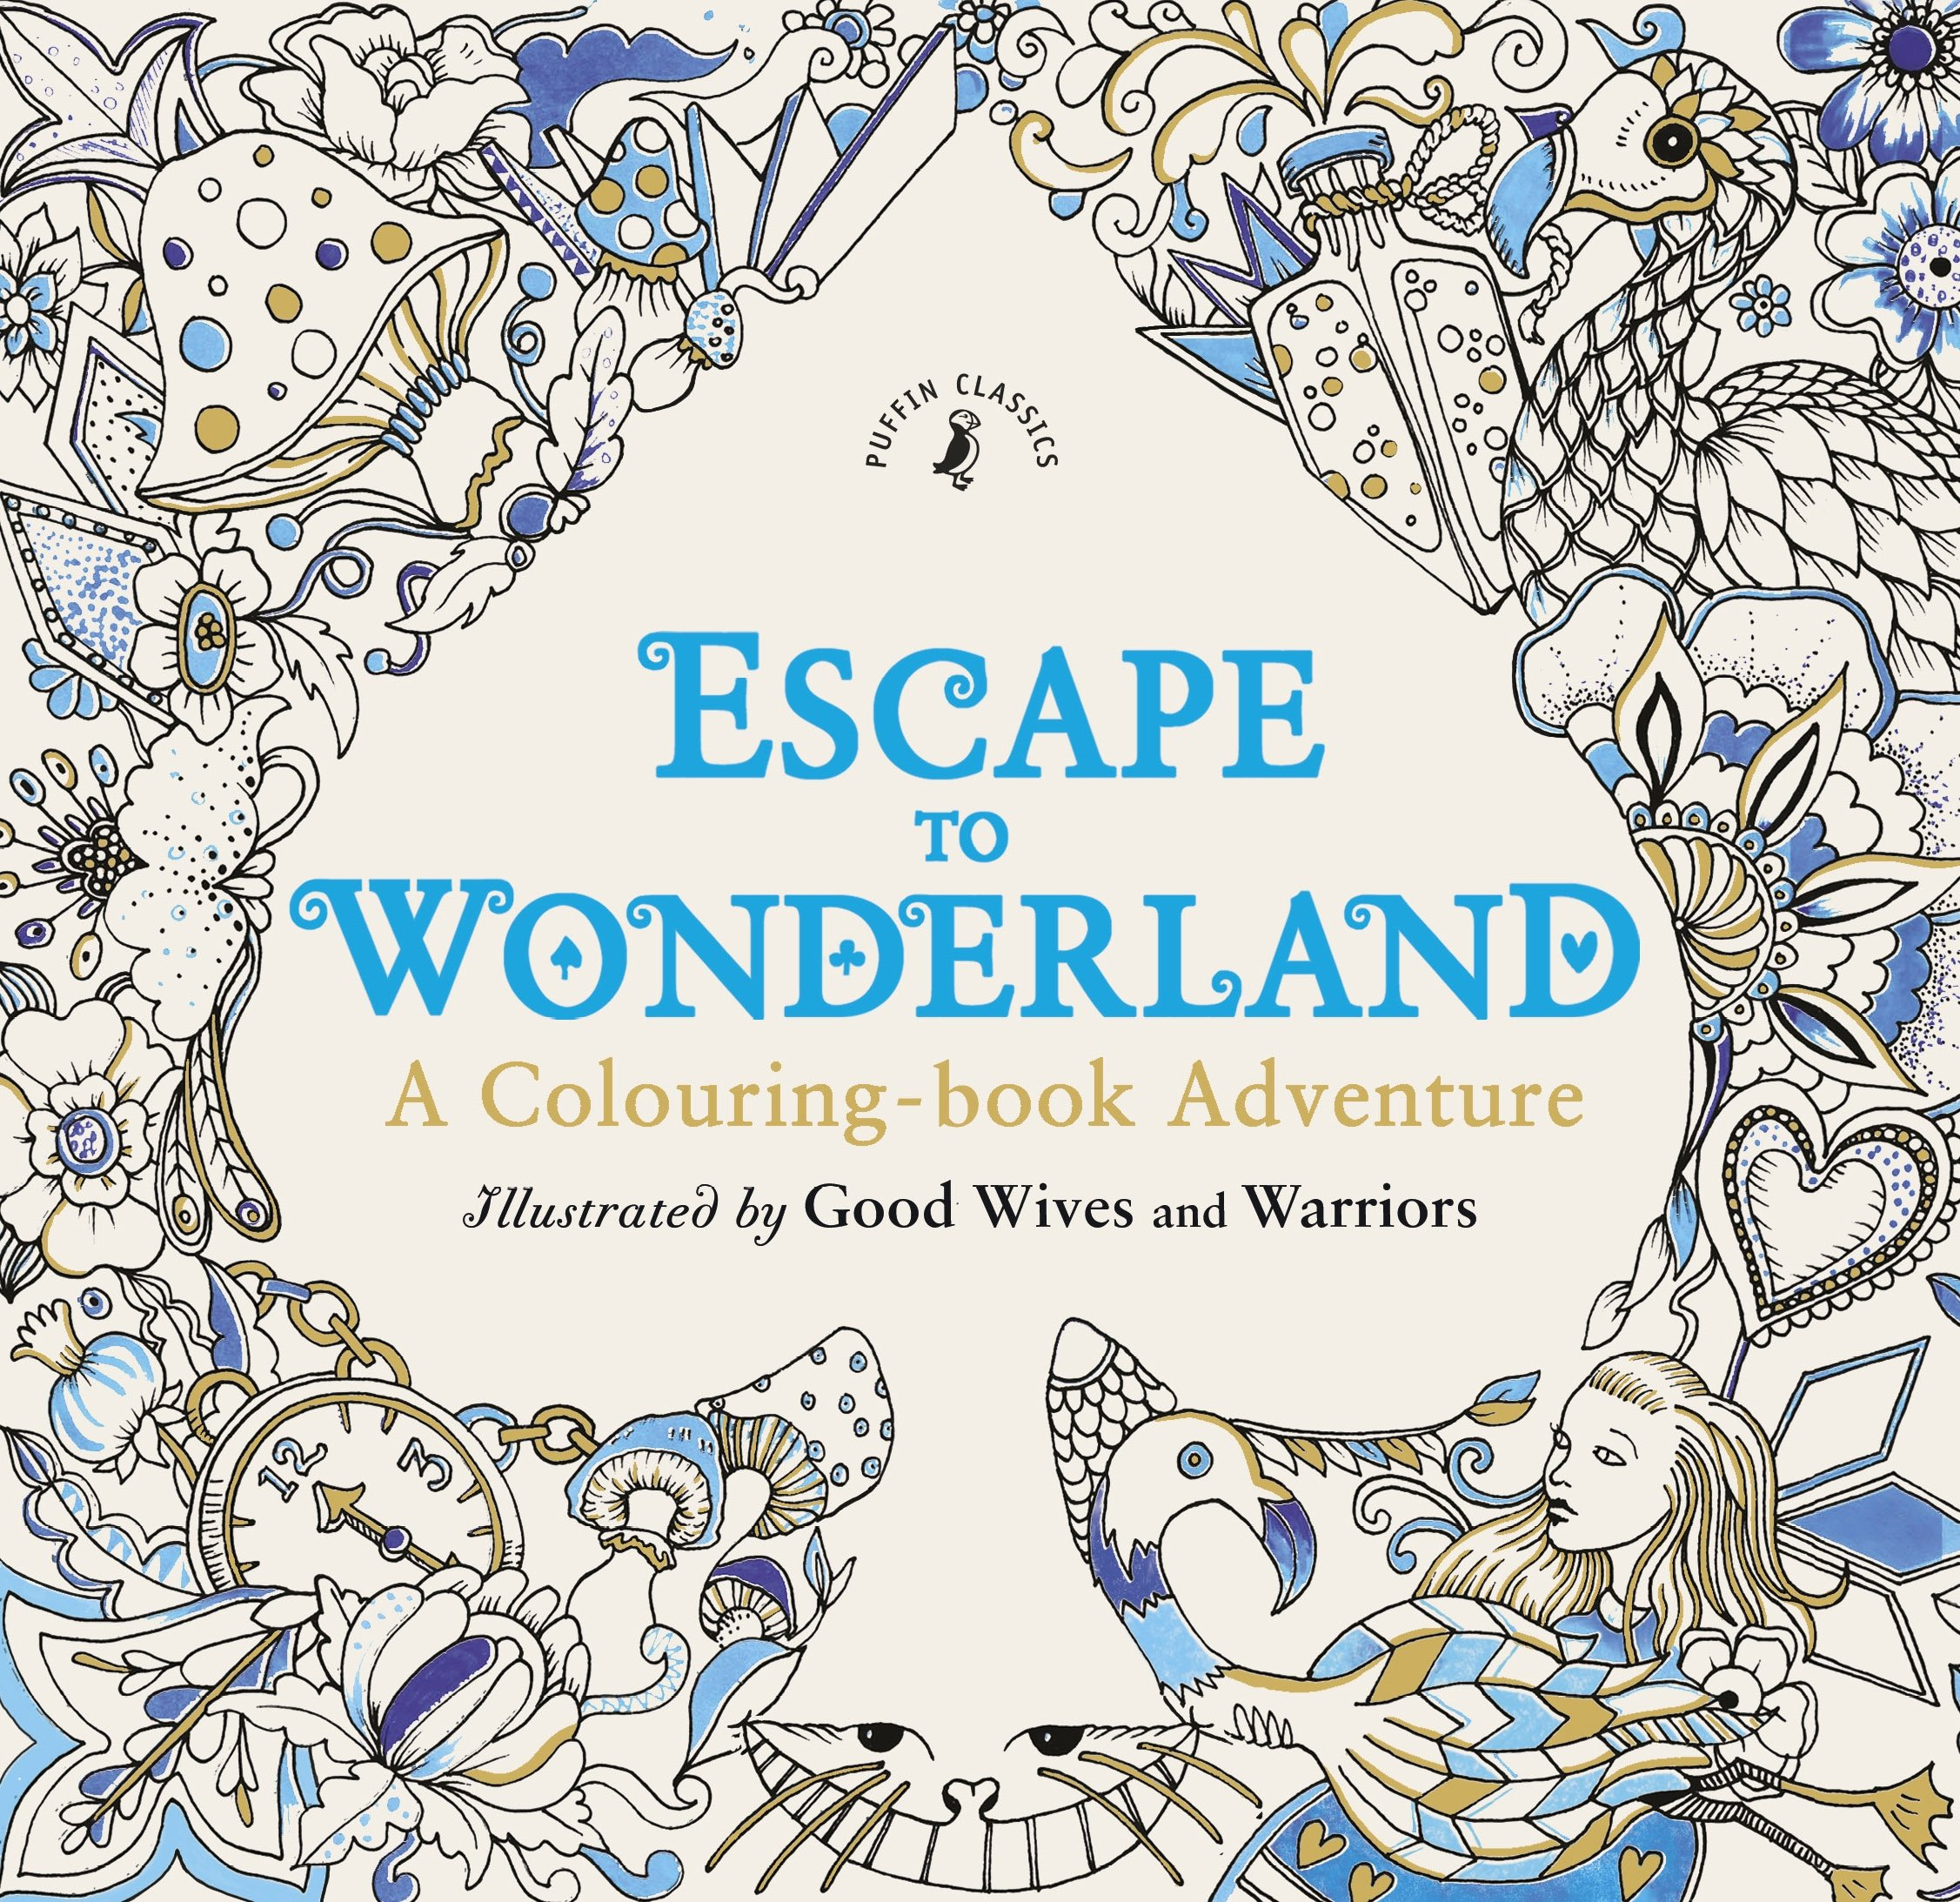 http://www.amazon.it/Escape-Wonderland-Colouring-Book-Adventure/dp/014136615X/ref=sr_1_19?s=english-books&ie=UTF8&qid=1450276972&sr=1-19&keywords=colouring+book